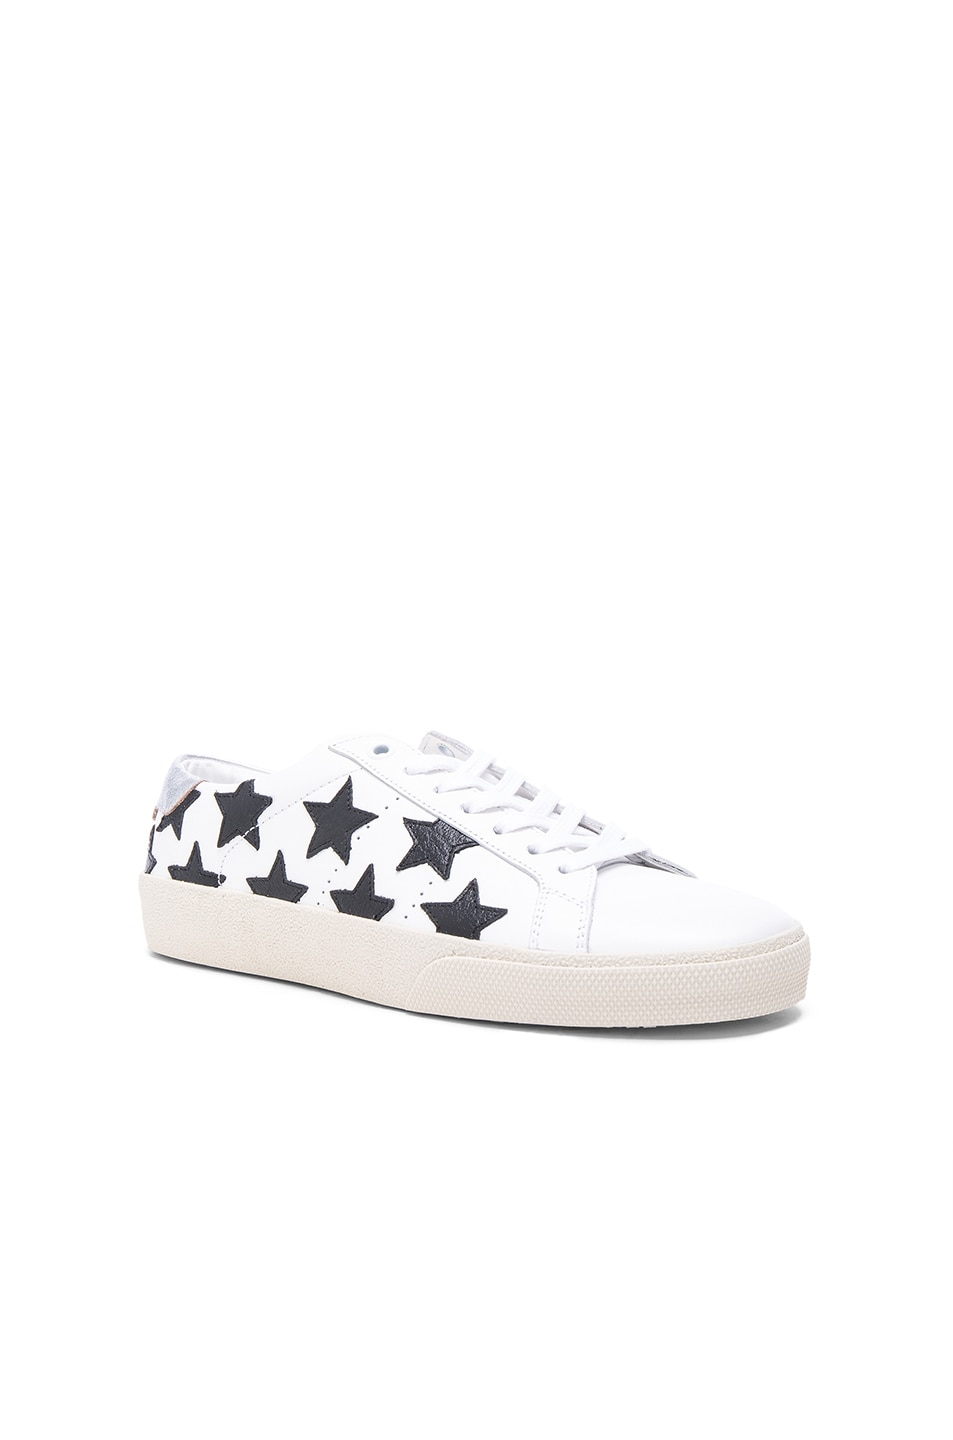 Image 2 of Saint Laurent Court Classic Star Leather Sneakers in Black & White